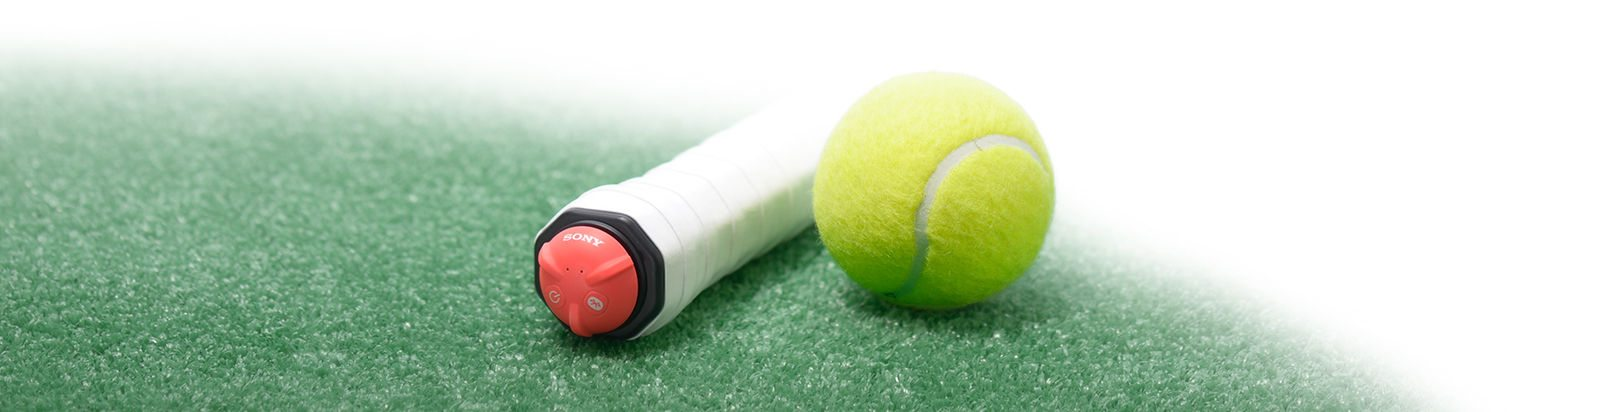 tennis gadgets and trackers to improve your game 4 - The battle of the tennis sensors